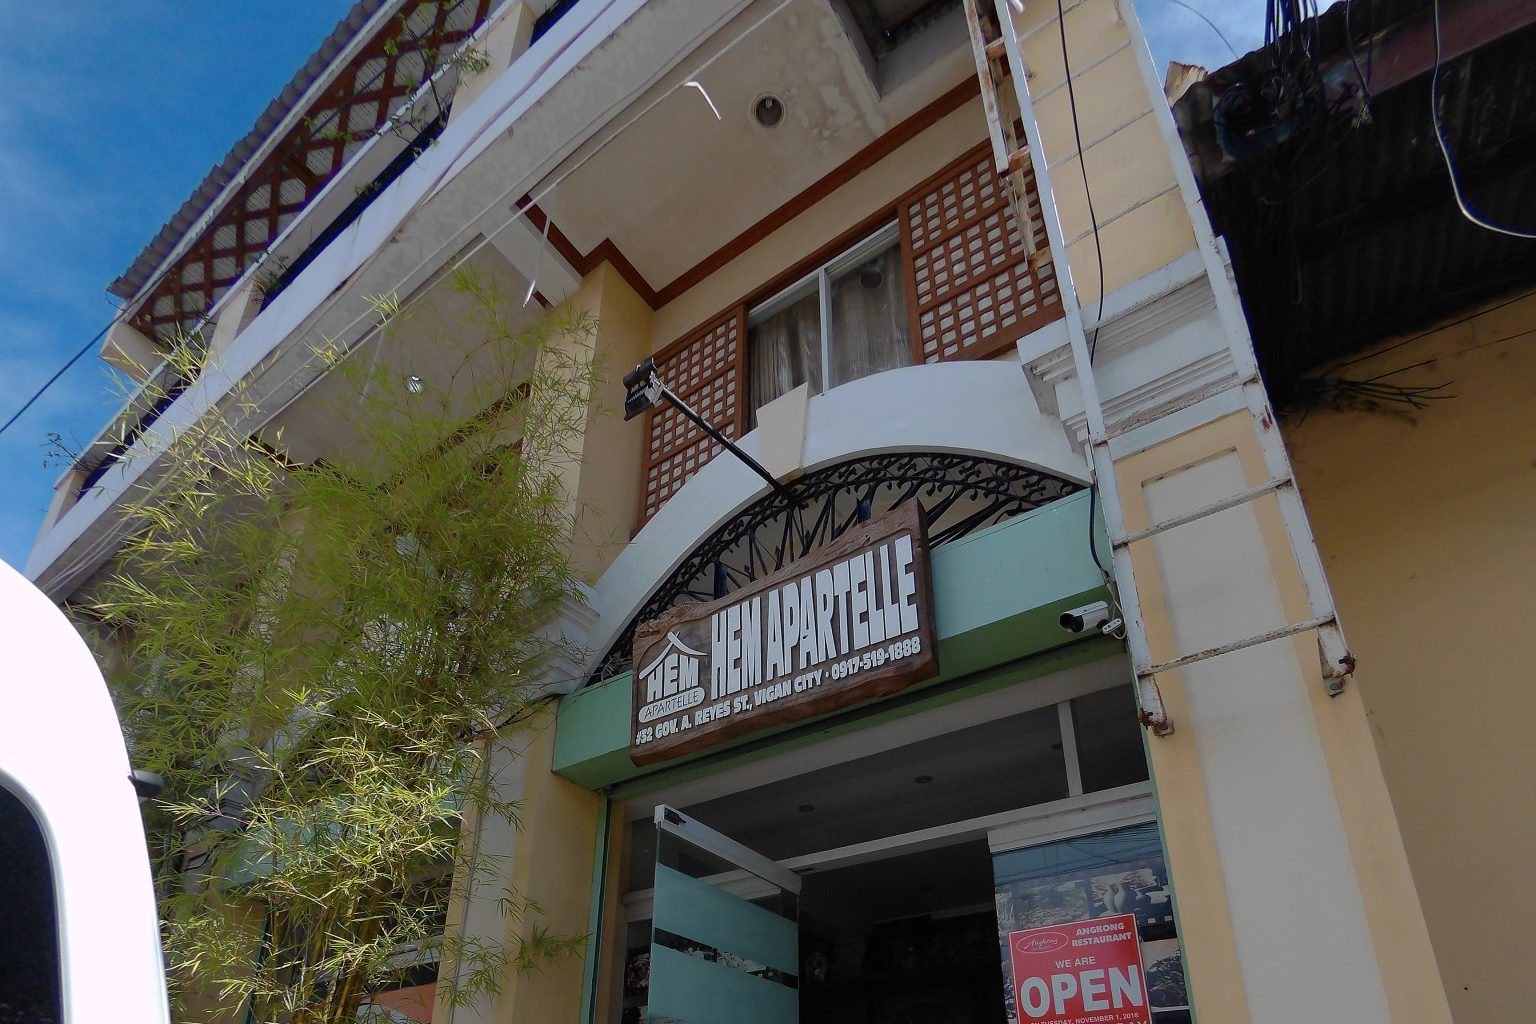 HEM Apartelle: Your Cheap But Comfy Stay in Vigan